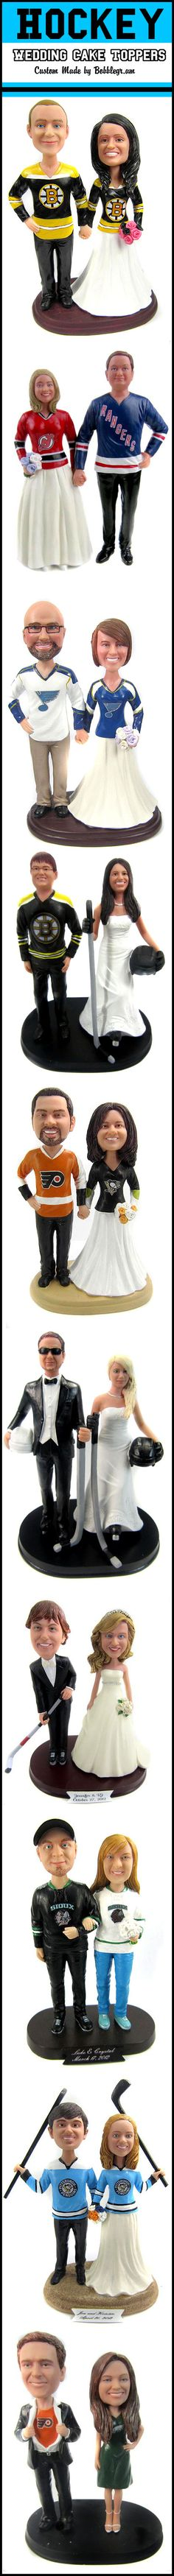 Custom cake toppers are perfect for hockey loving couples - even if they root for different teams!  The heads are custom sculpted based on your photos and the jerseys are custom painted with any team logo, number and name.